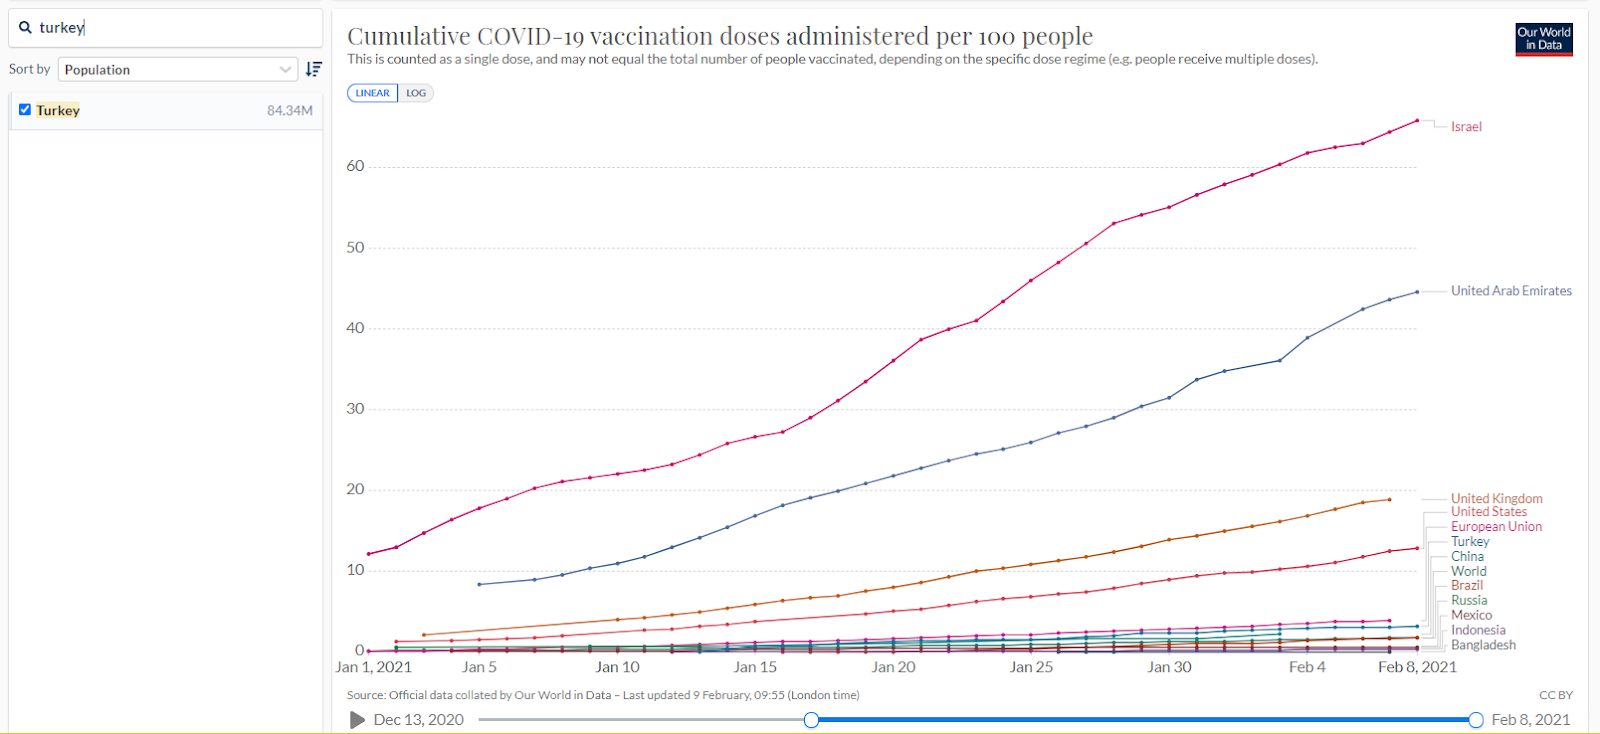 Vaccination rollout in Turkey